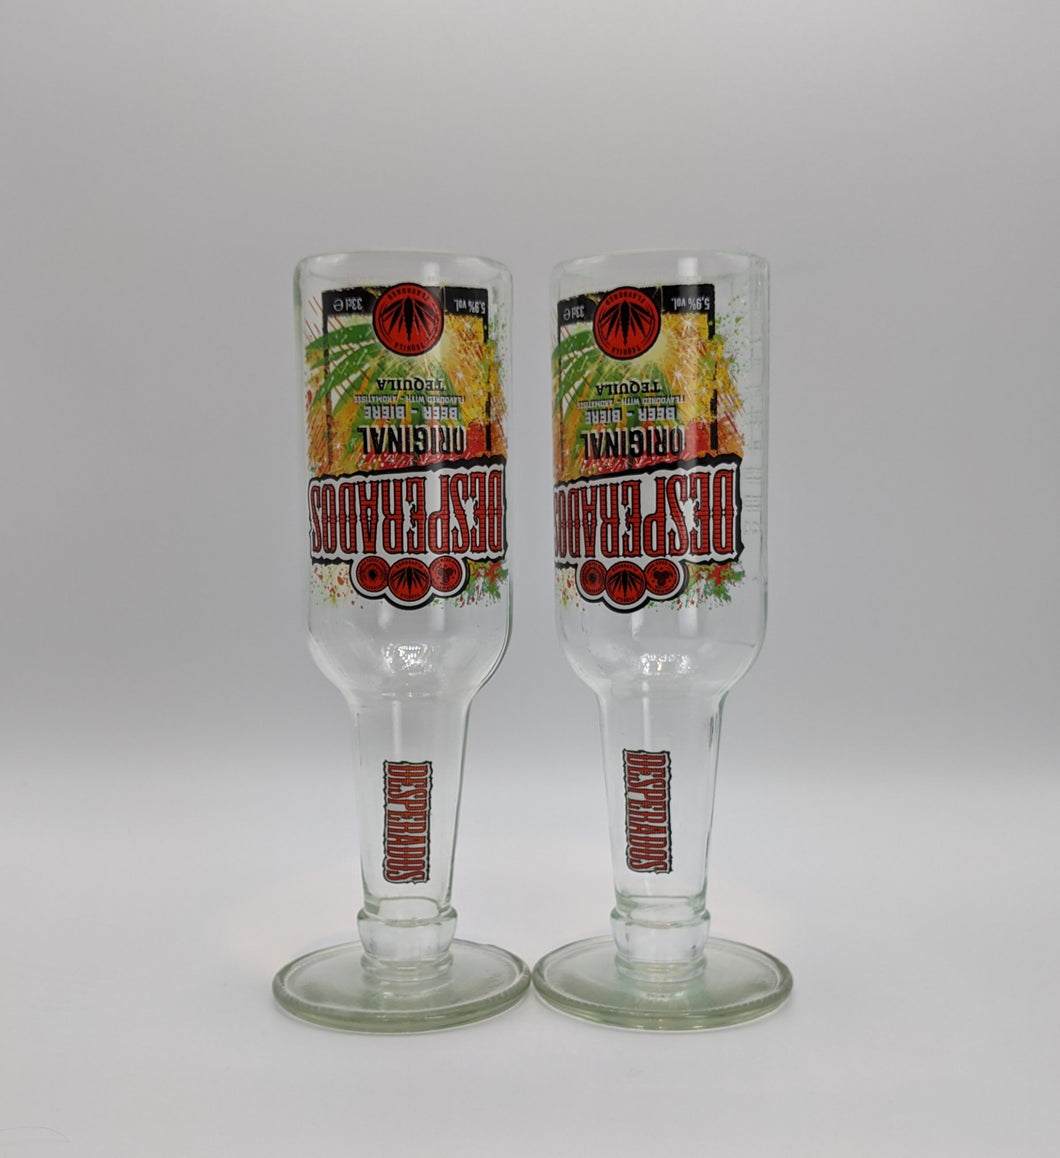 Desperados beer bottle tall glasses (pair)